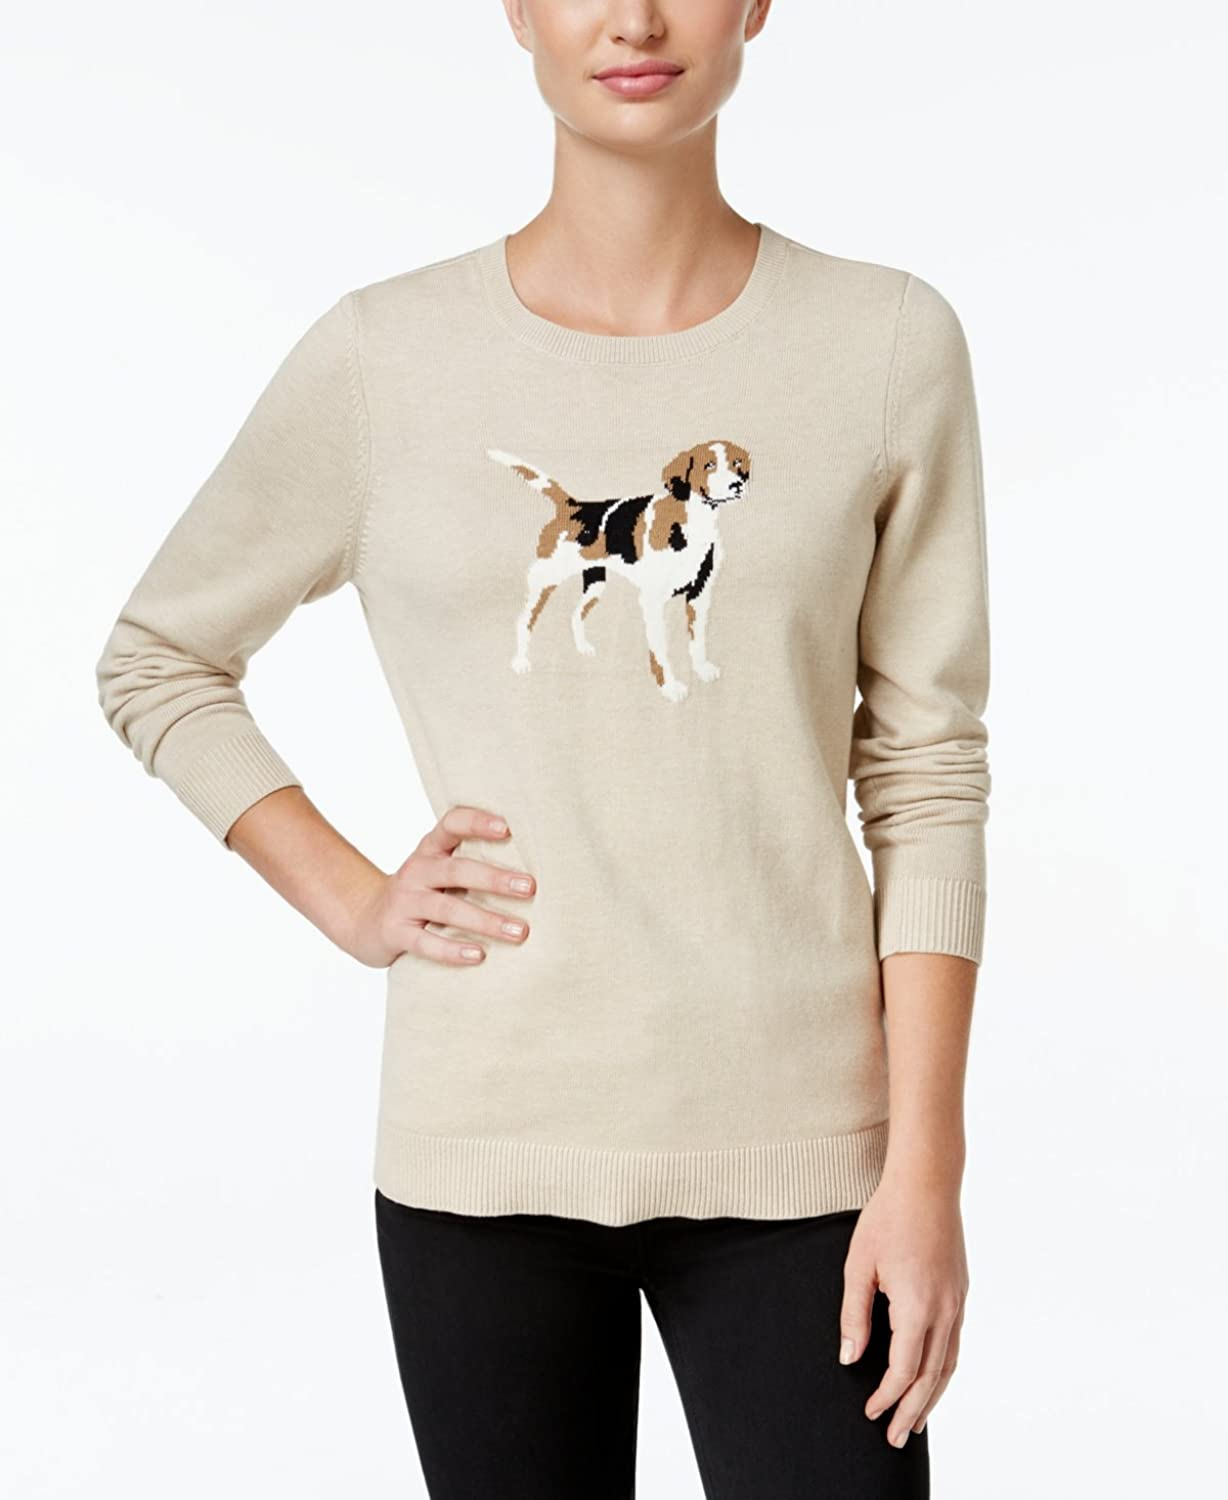 Charter Club Womens Dog Graphic Knit Sweater